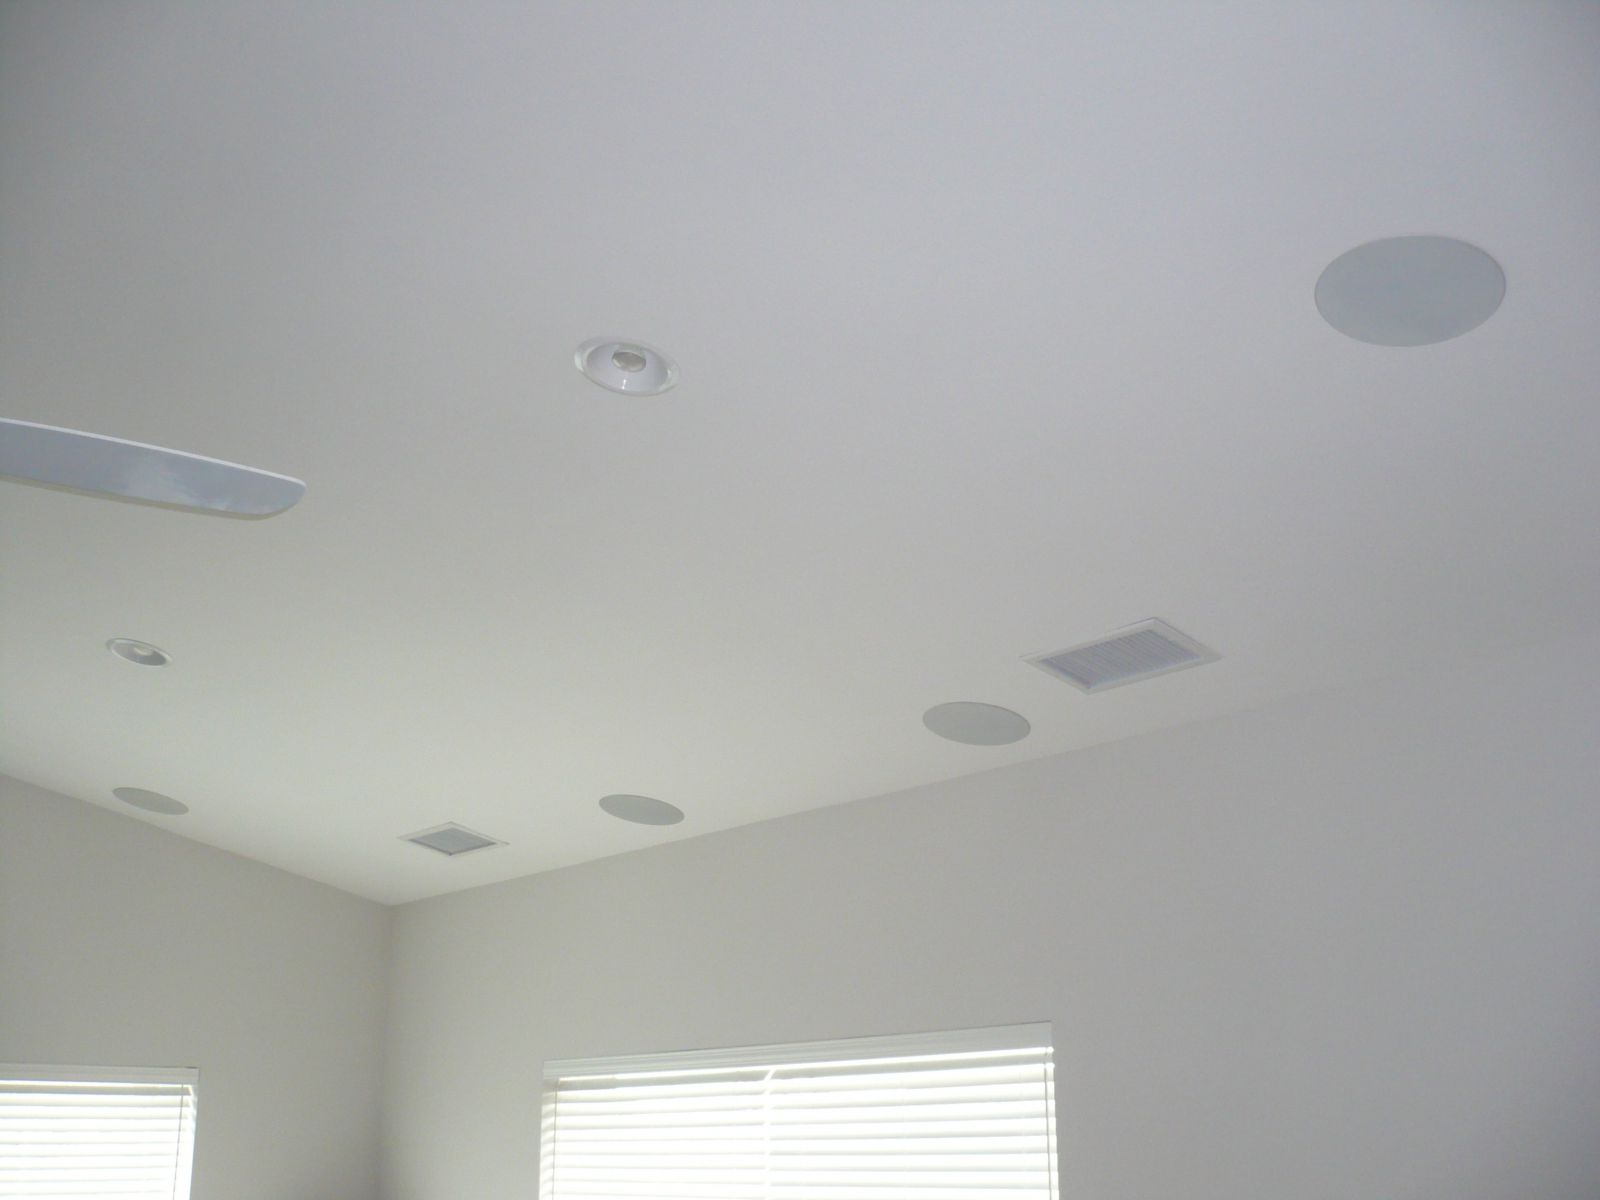 In ceiling with grills - High WAF